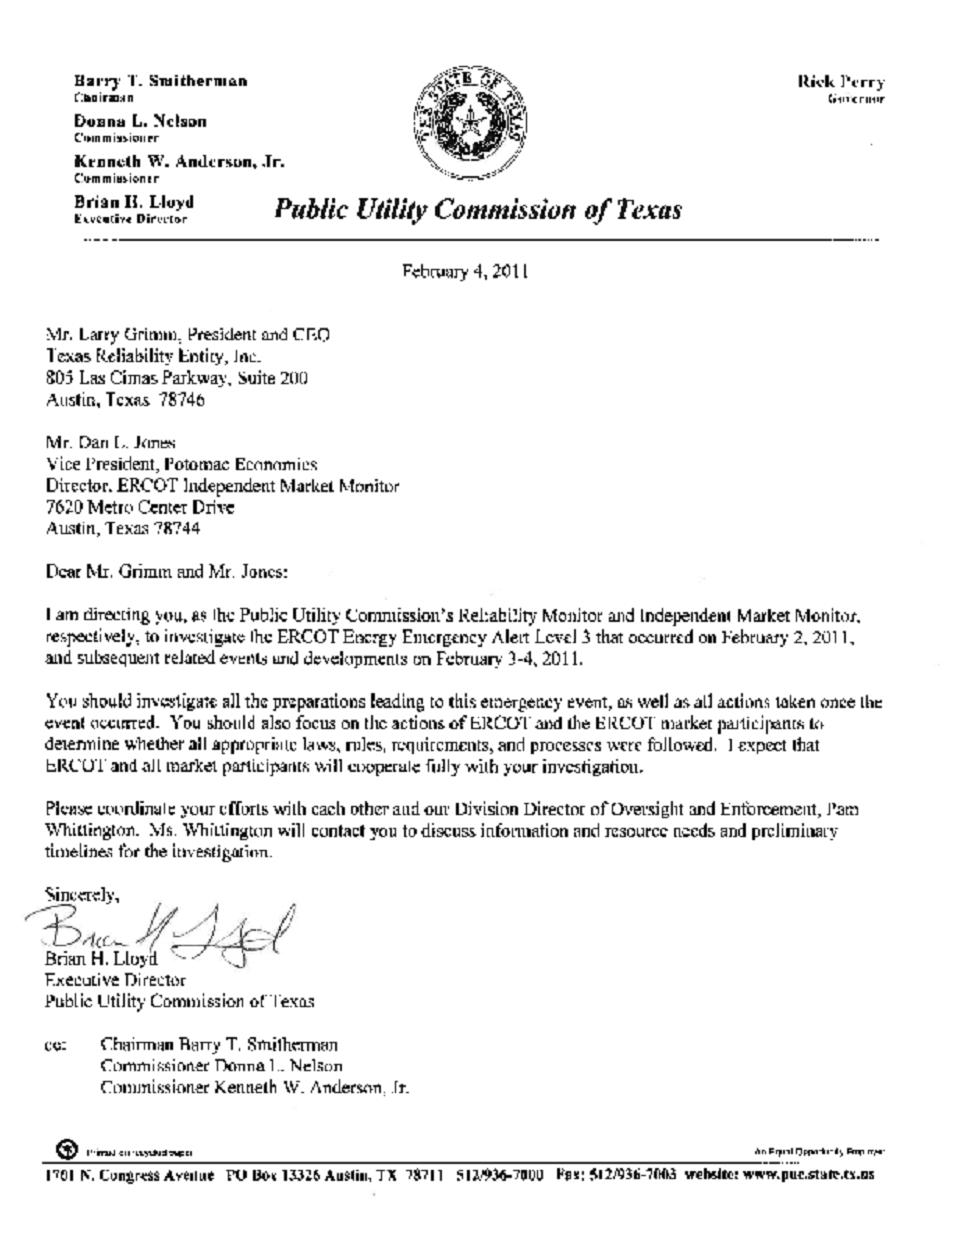 PUC rolling blackout investigation letter